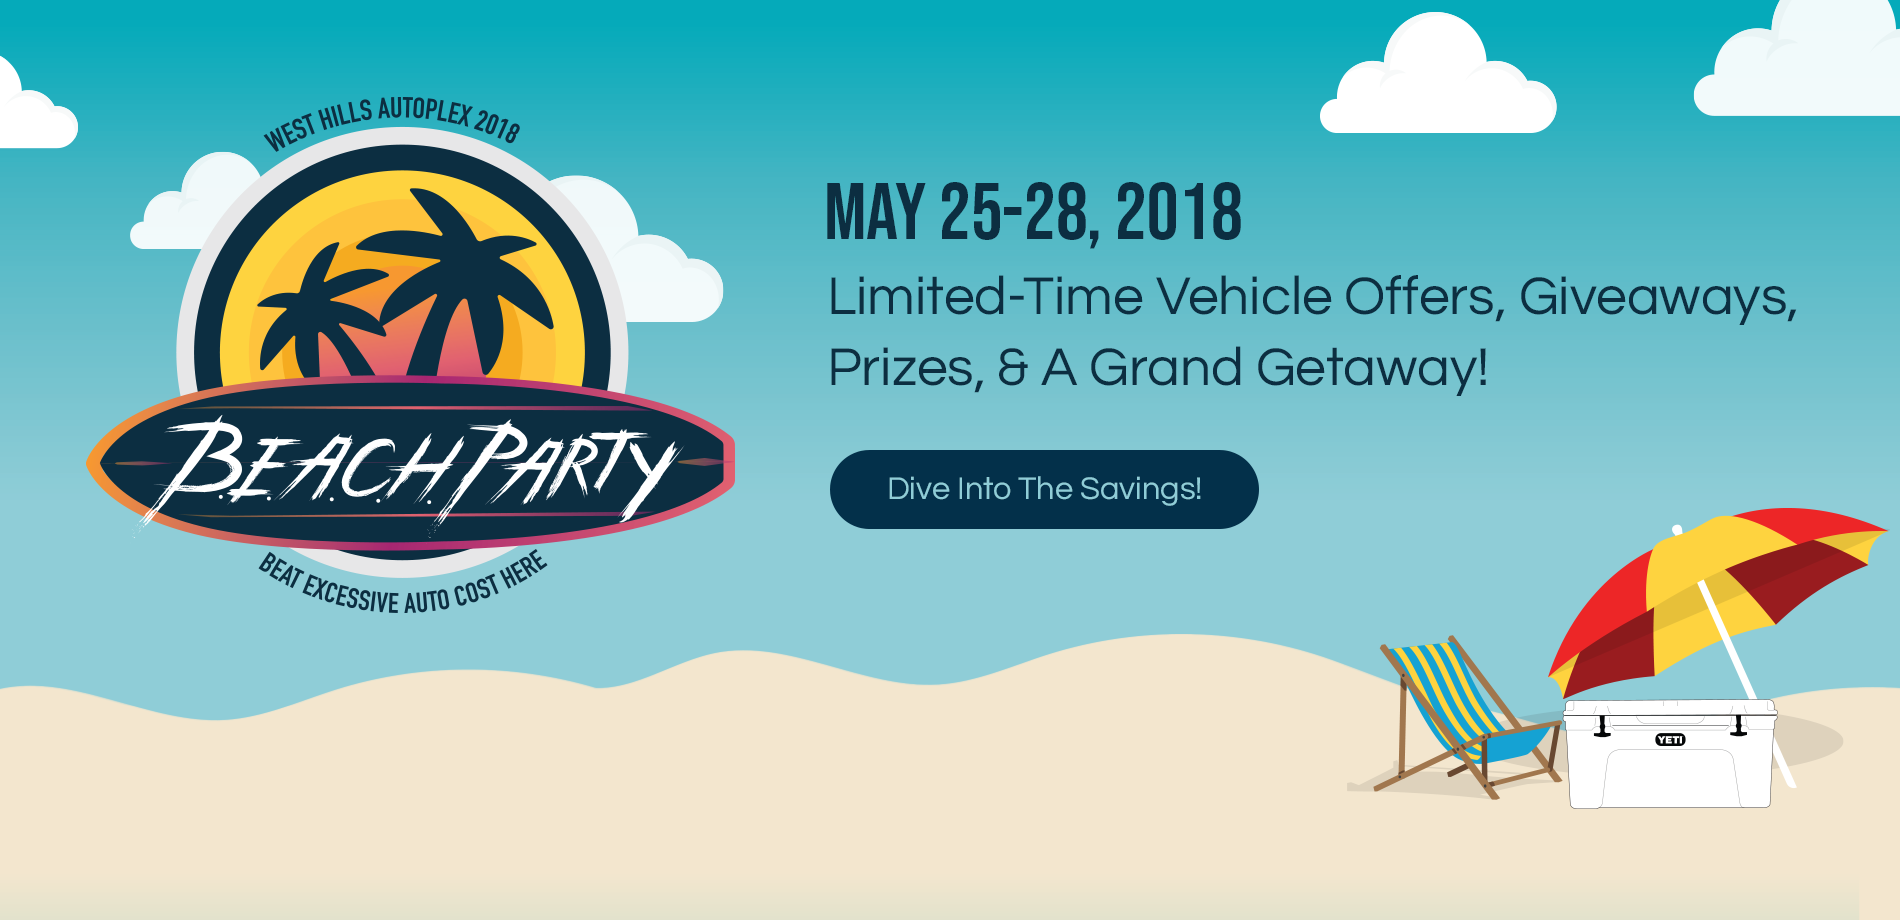 West Hills Auto Plex Beach Party Sales Event